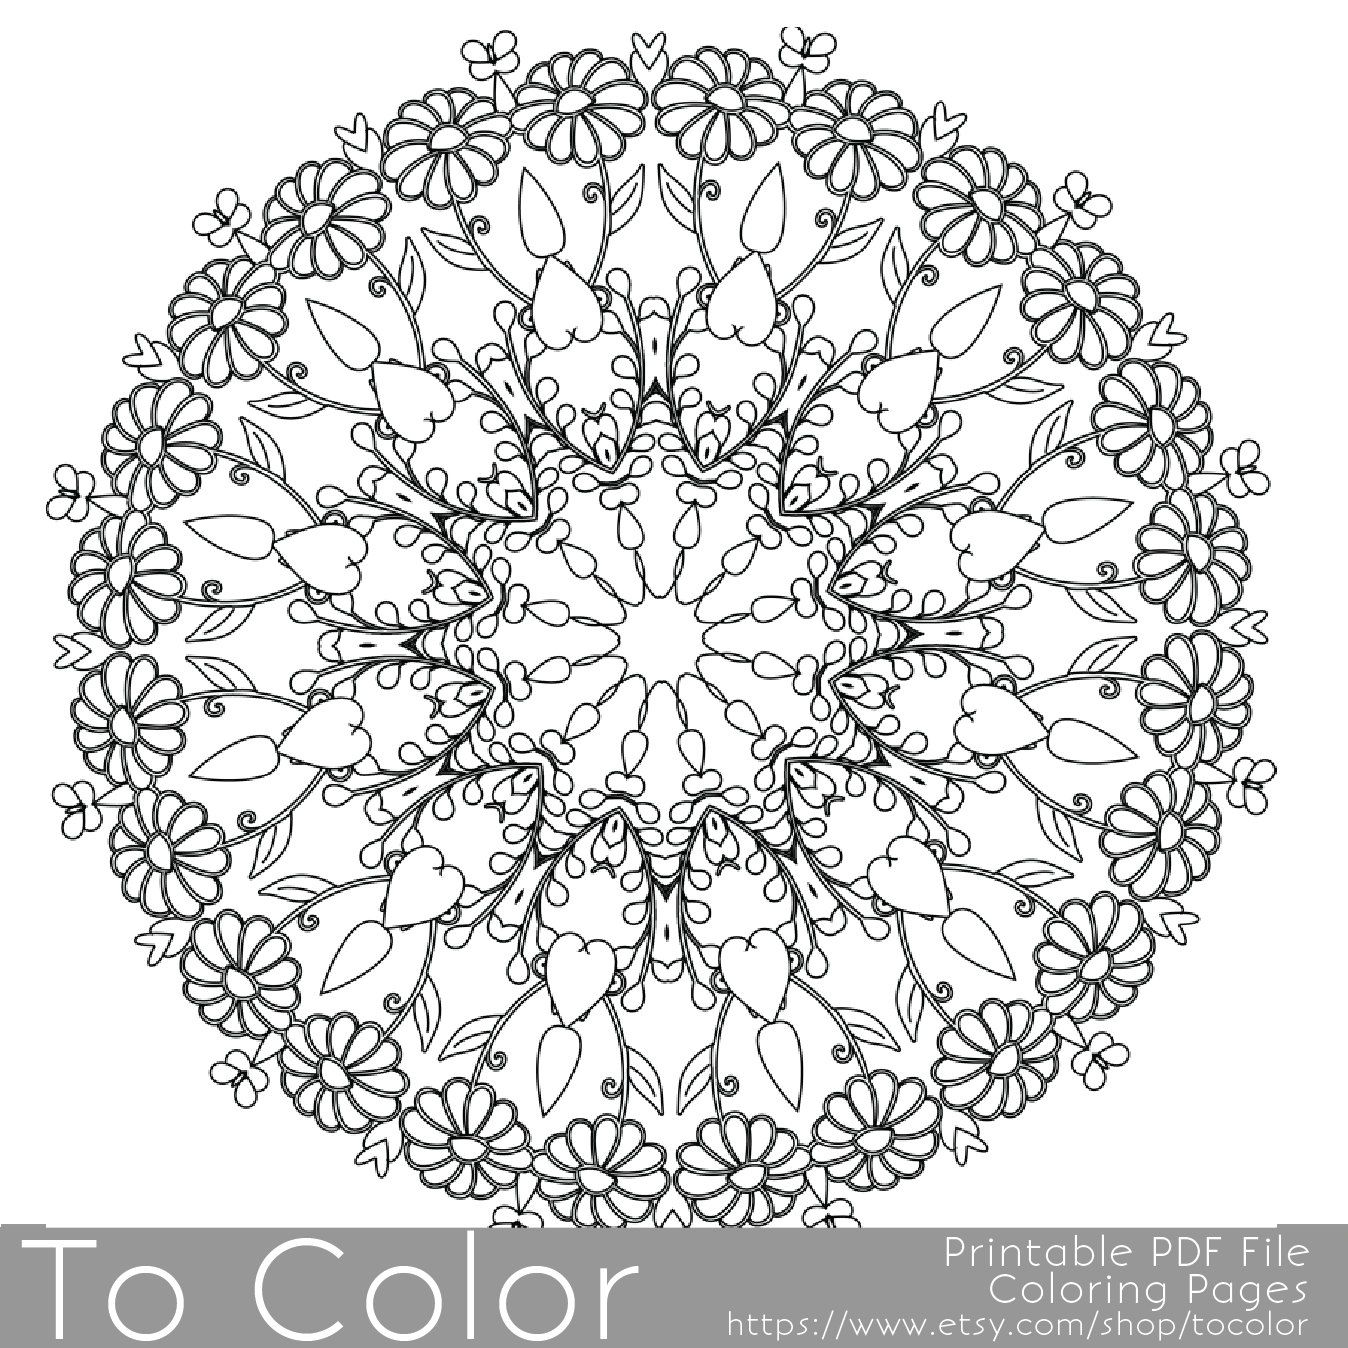 Intricate Printable Coloring Pages For Adults Gel Pens Mandala Pattern PDF JPG